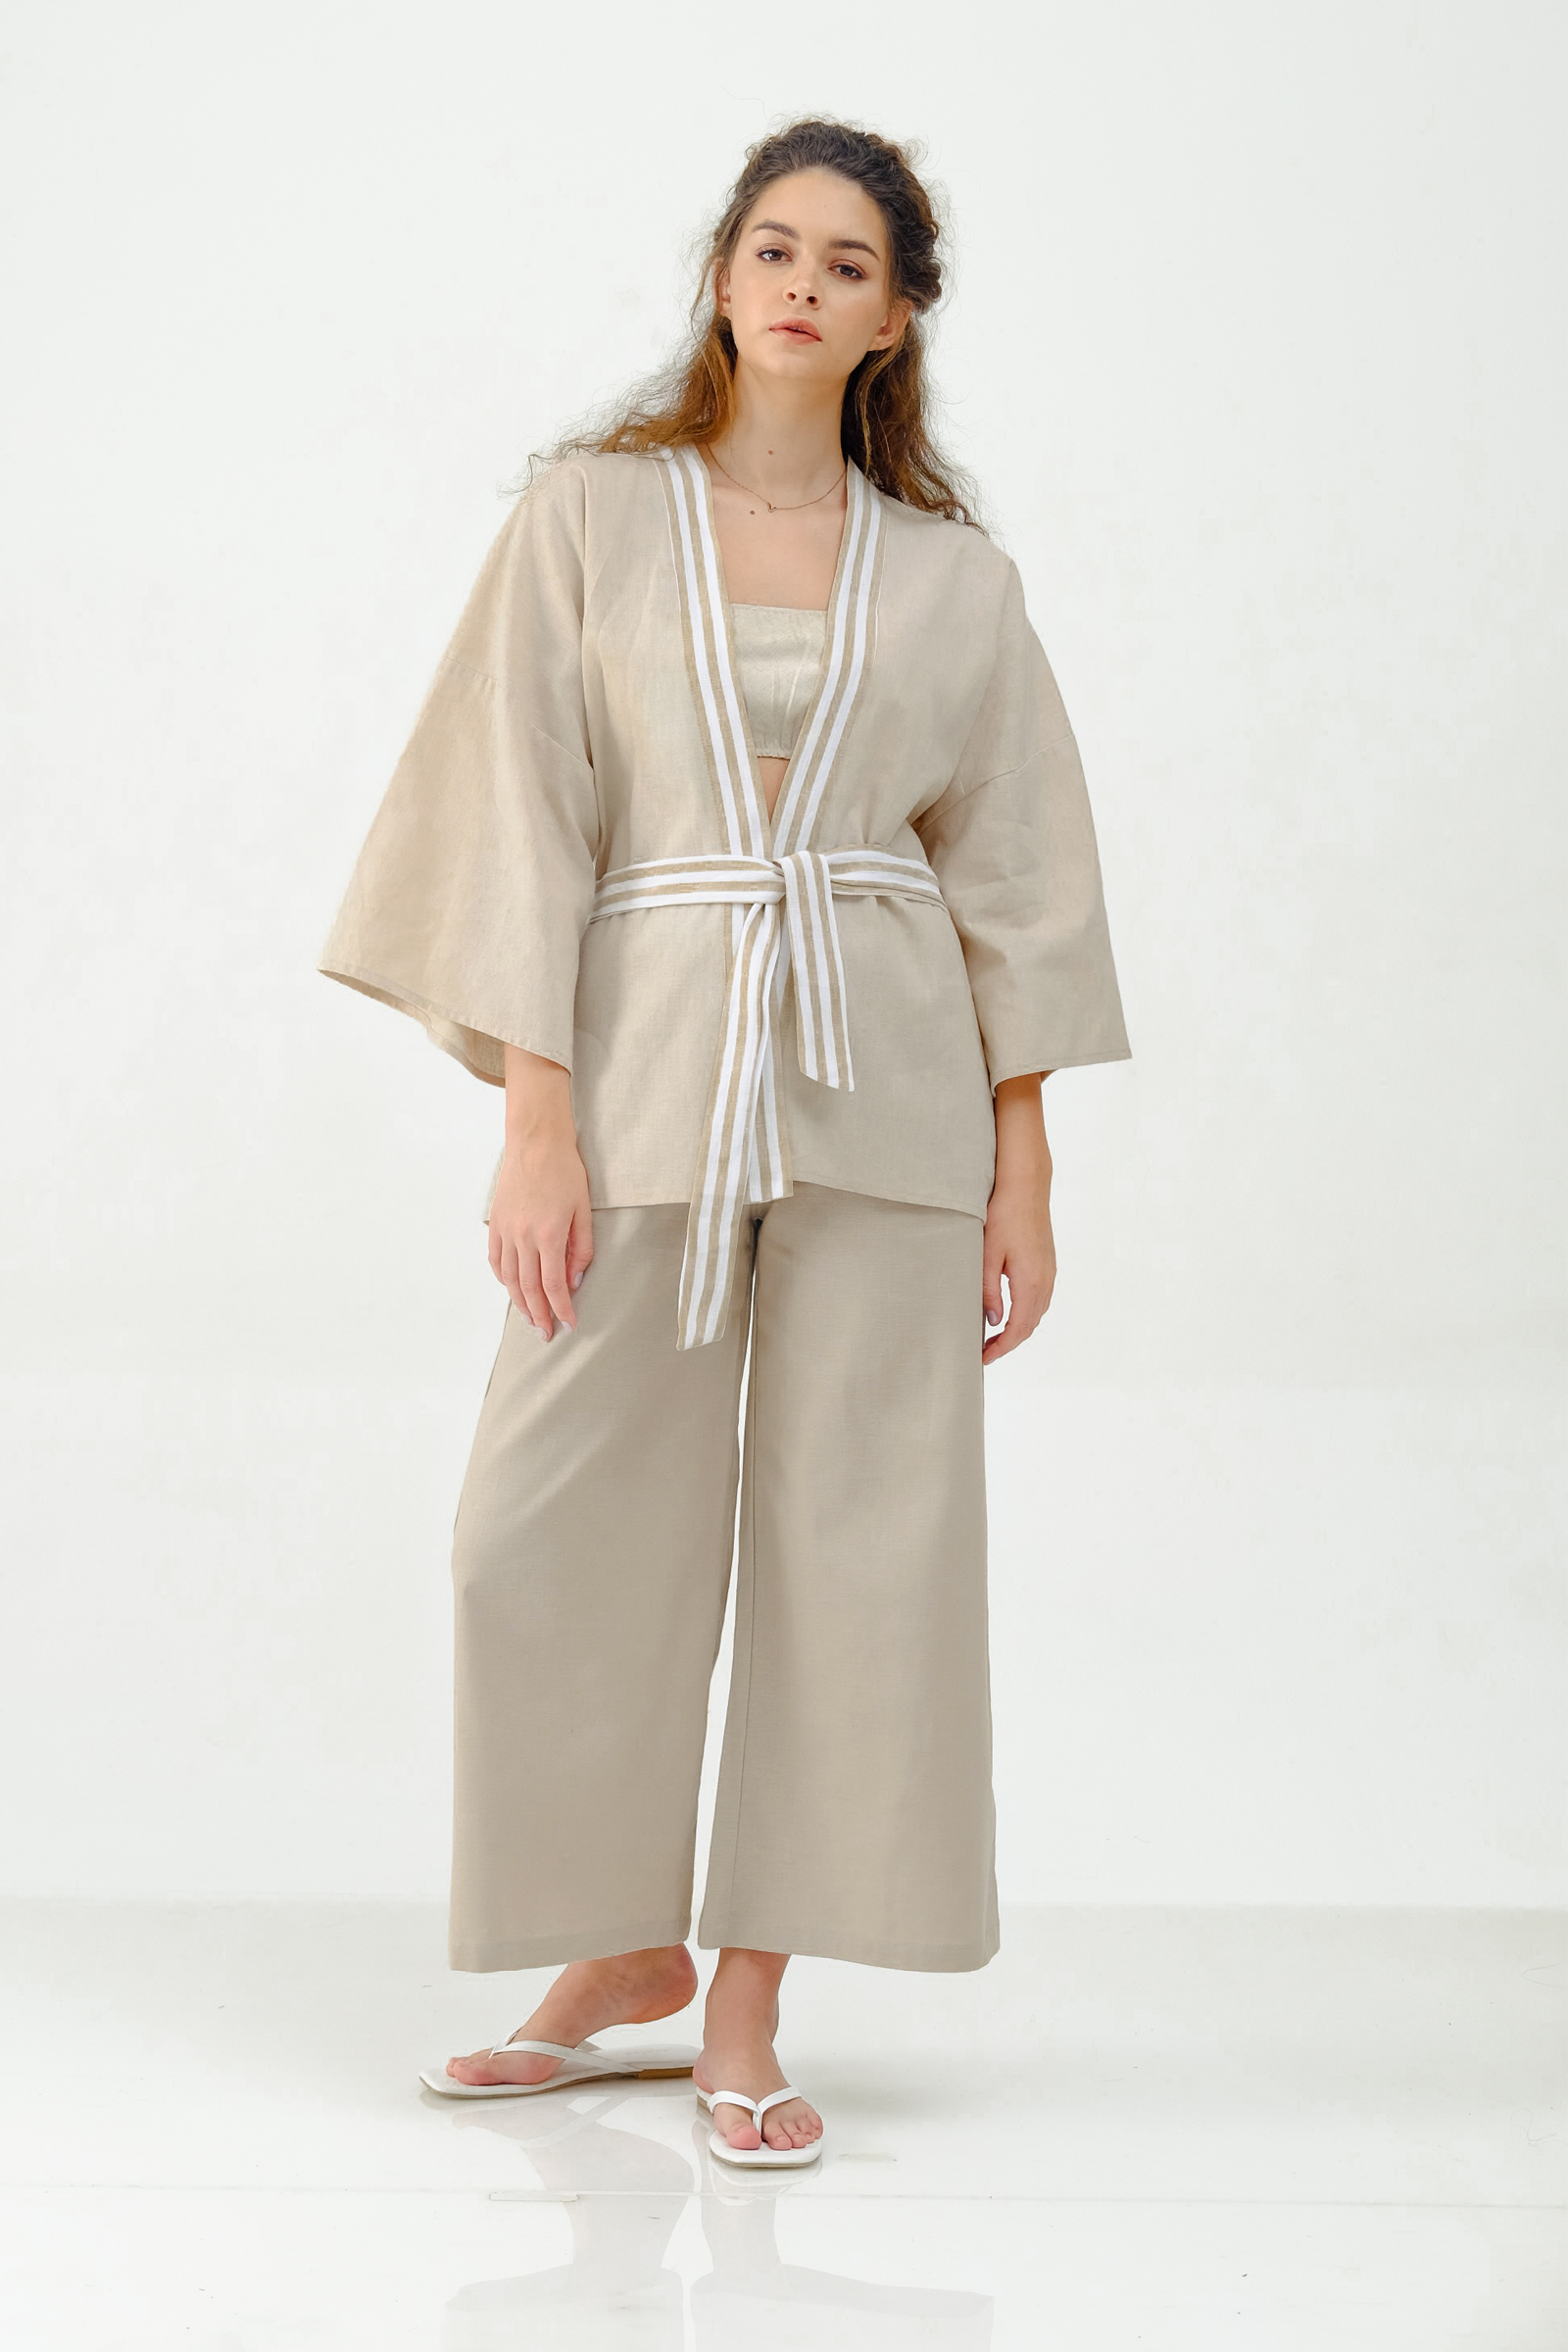 Picture of LUNIA SHORT ROBE CREAM STRIPES X POURIE